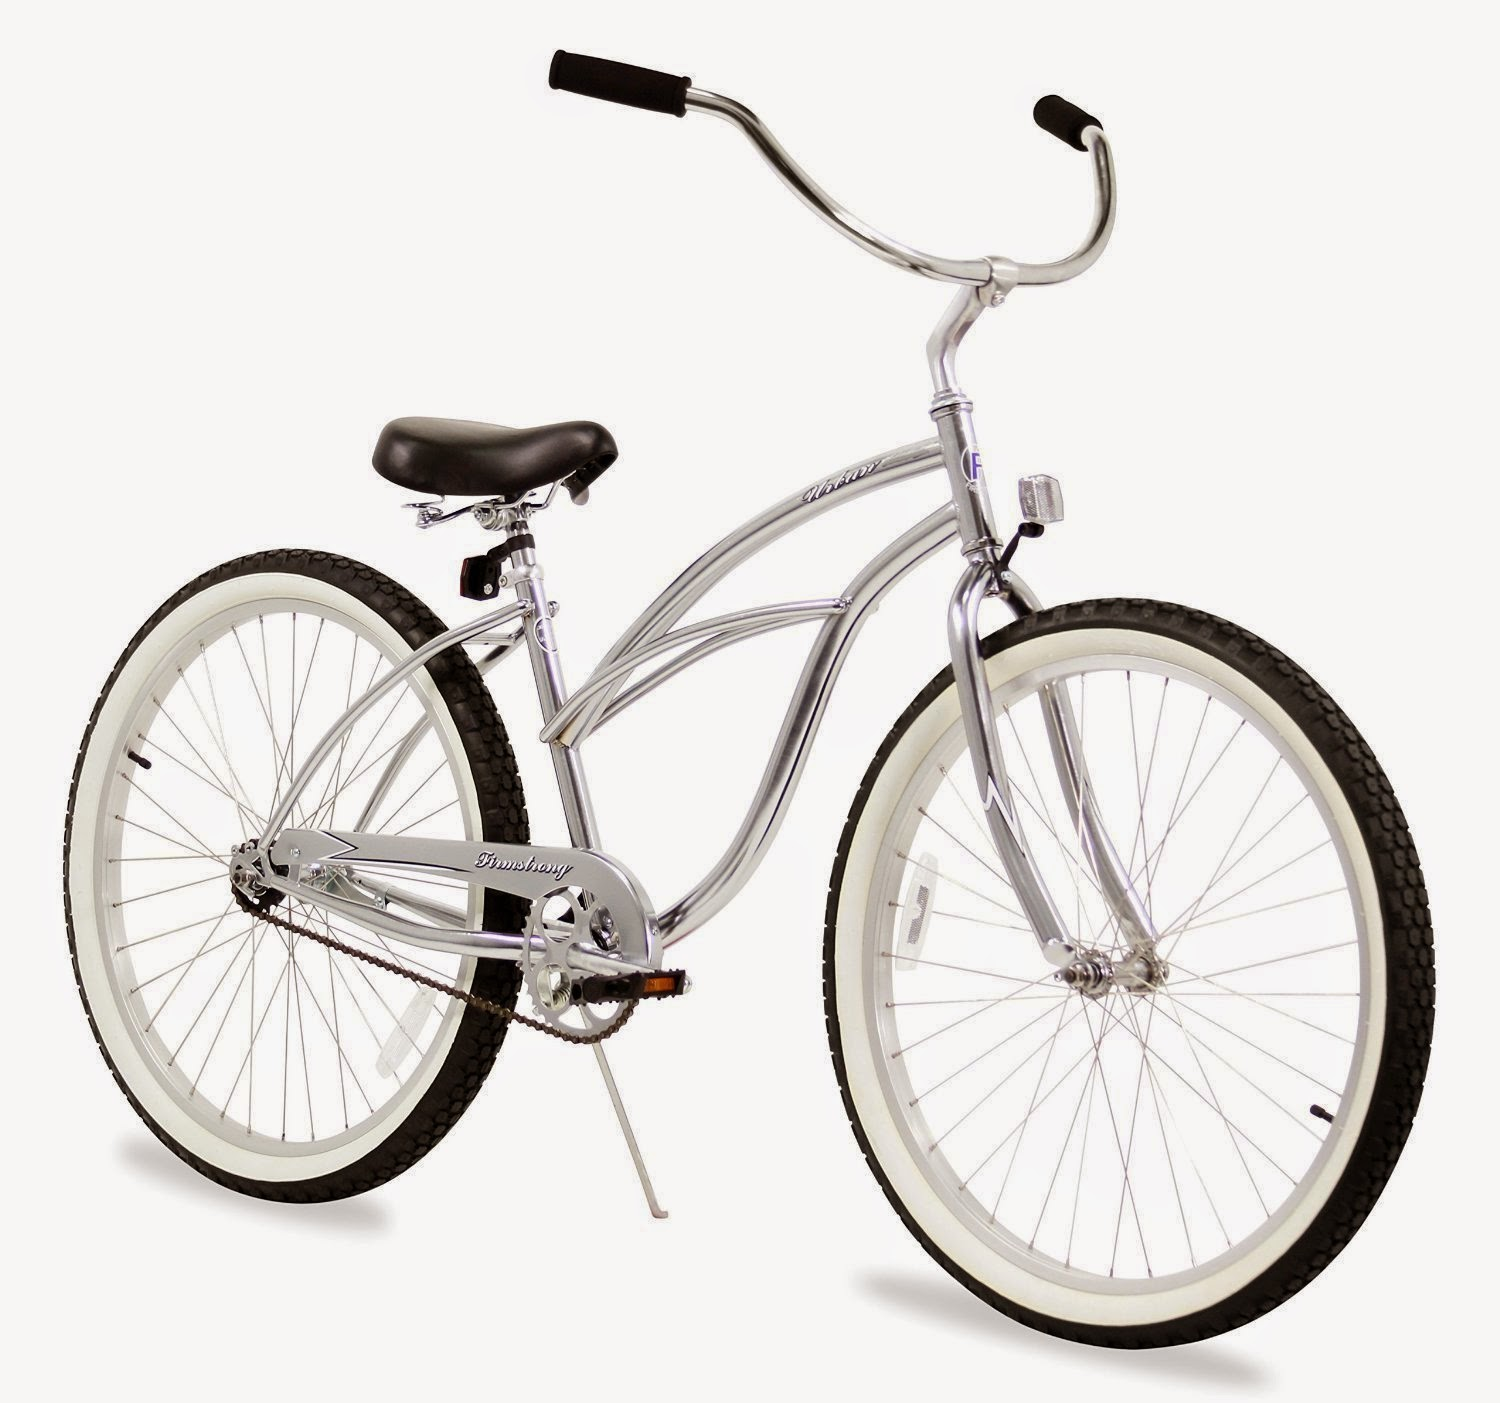 Firmstrong Urban Lady Beach Cruiser bike, single-speed, chrome color, plus choice of other colors, review, easy to use & comfortable bike with swept-back handlebars for upright riding position, coaster brake